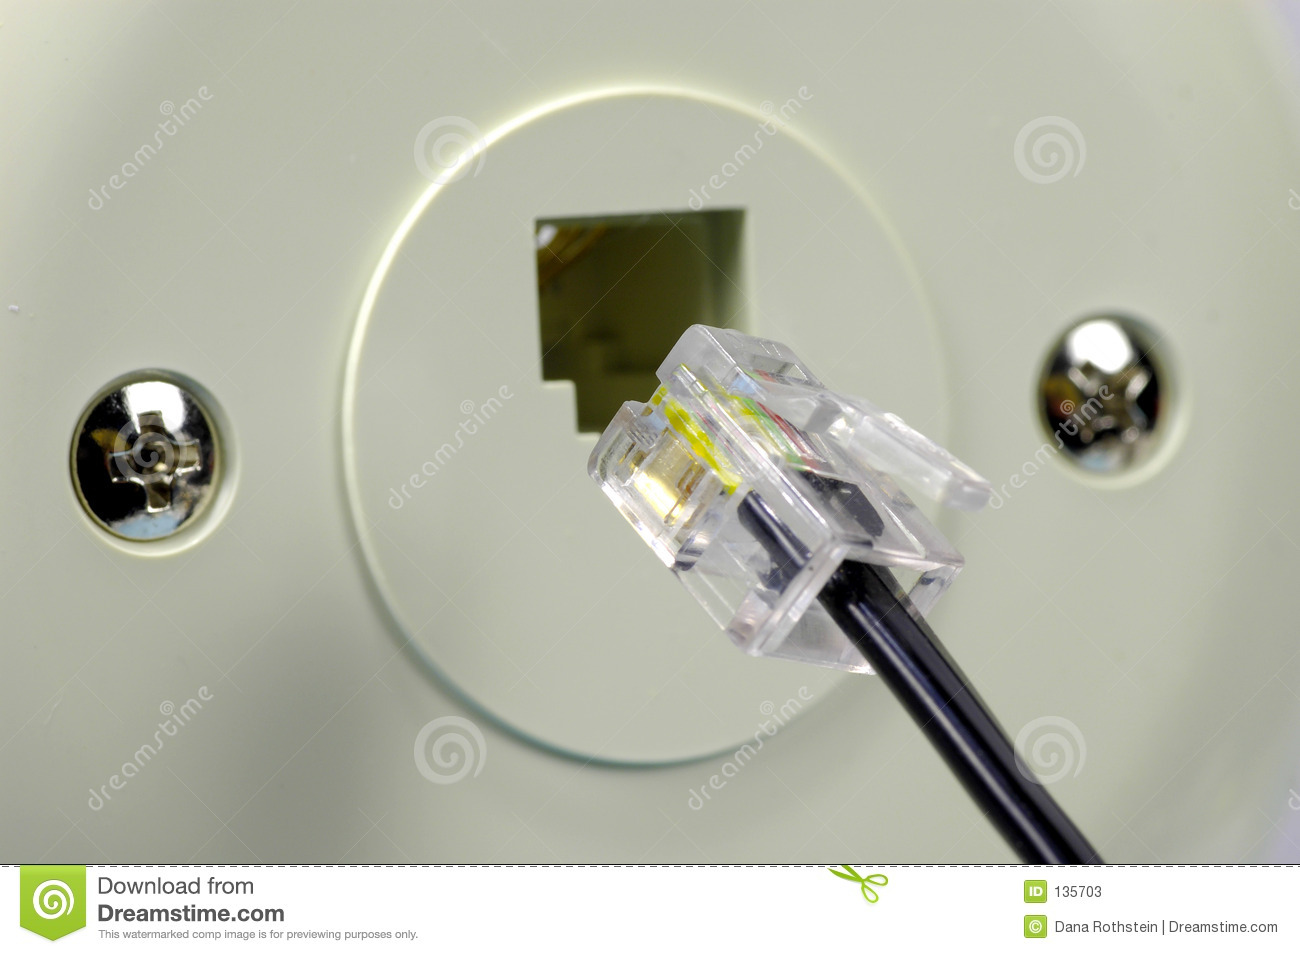 hight resolution of telephone jack stock photos image 135703 4 wire telephone jack wiring diagram